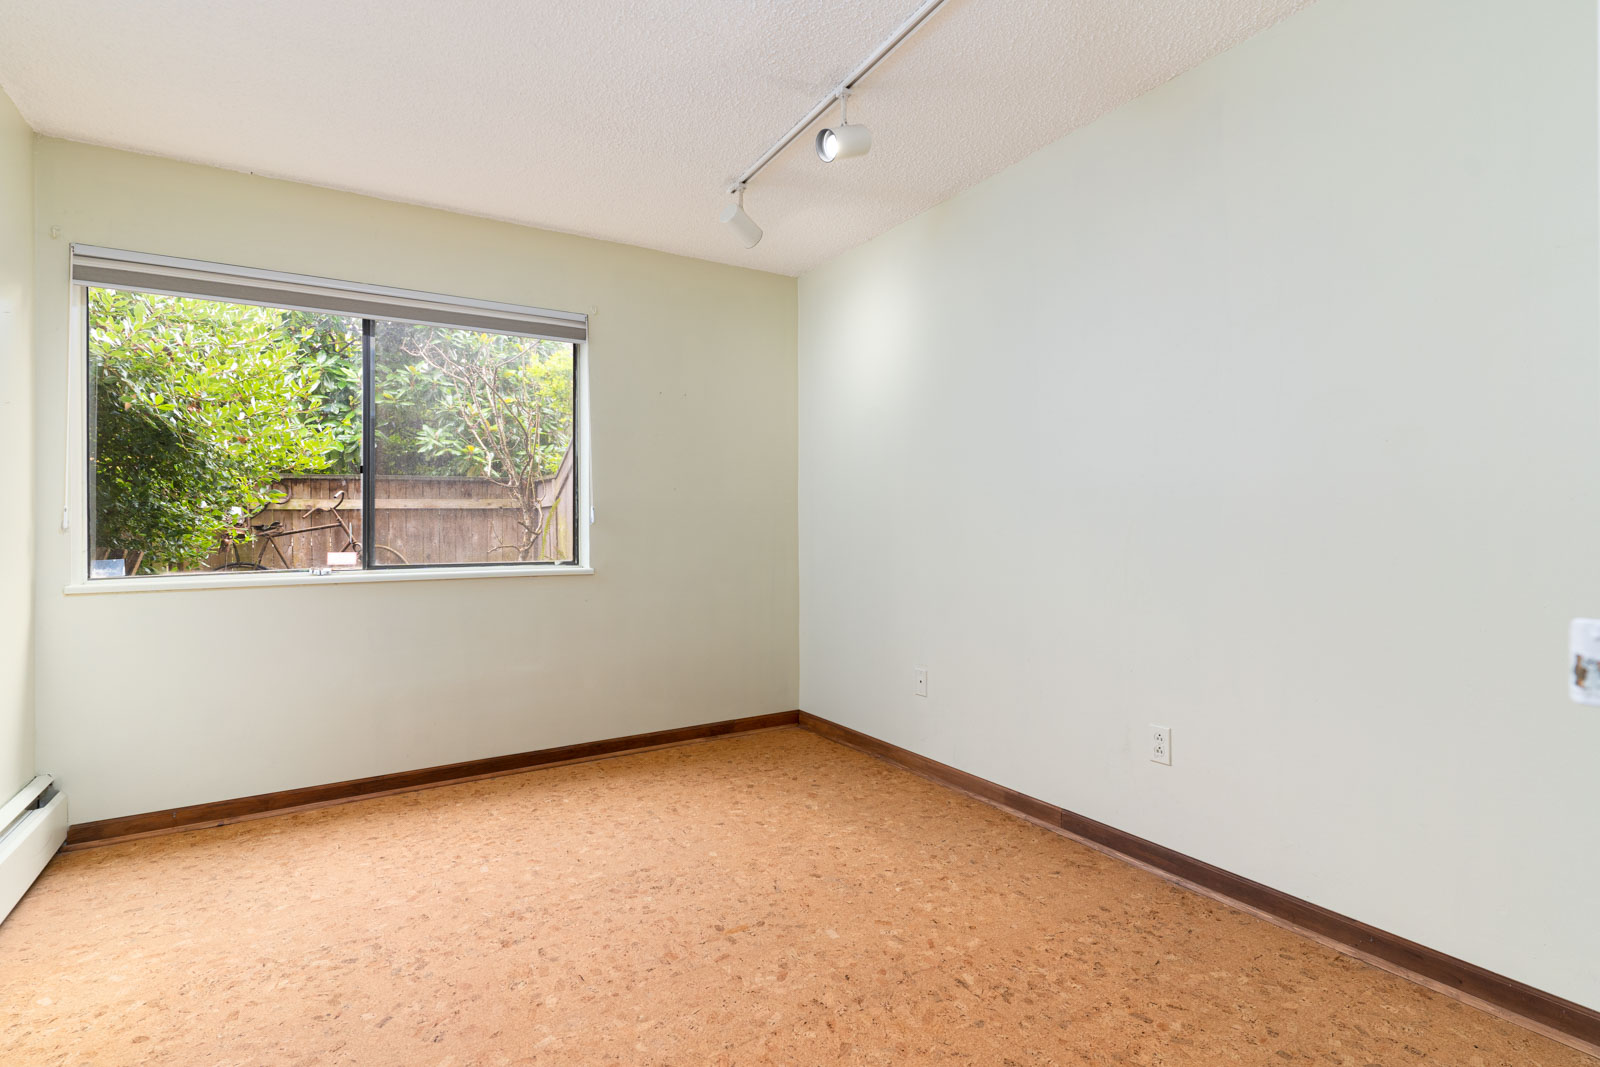 spacious living room in condo located in vancouver in mount pleasant neighborhood